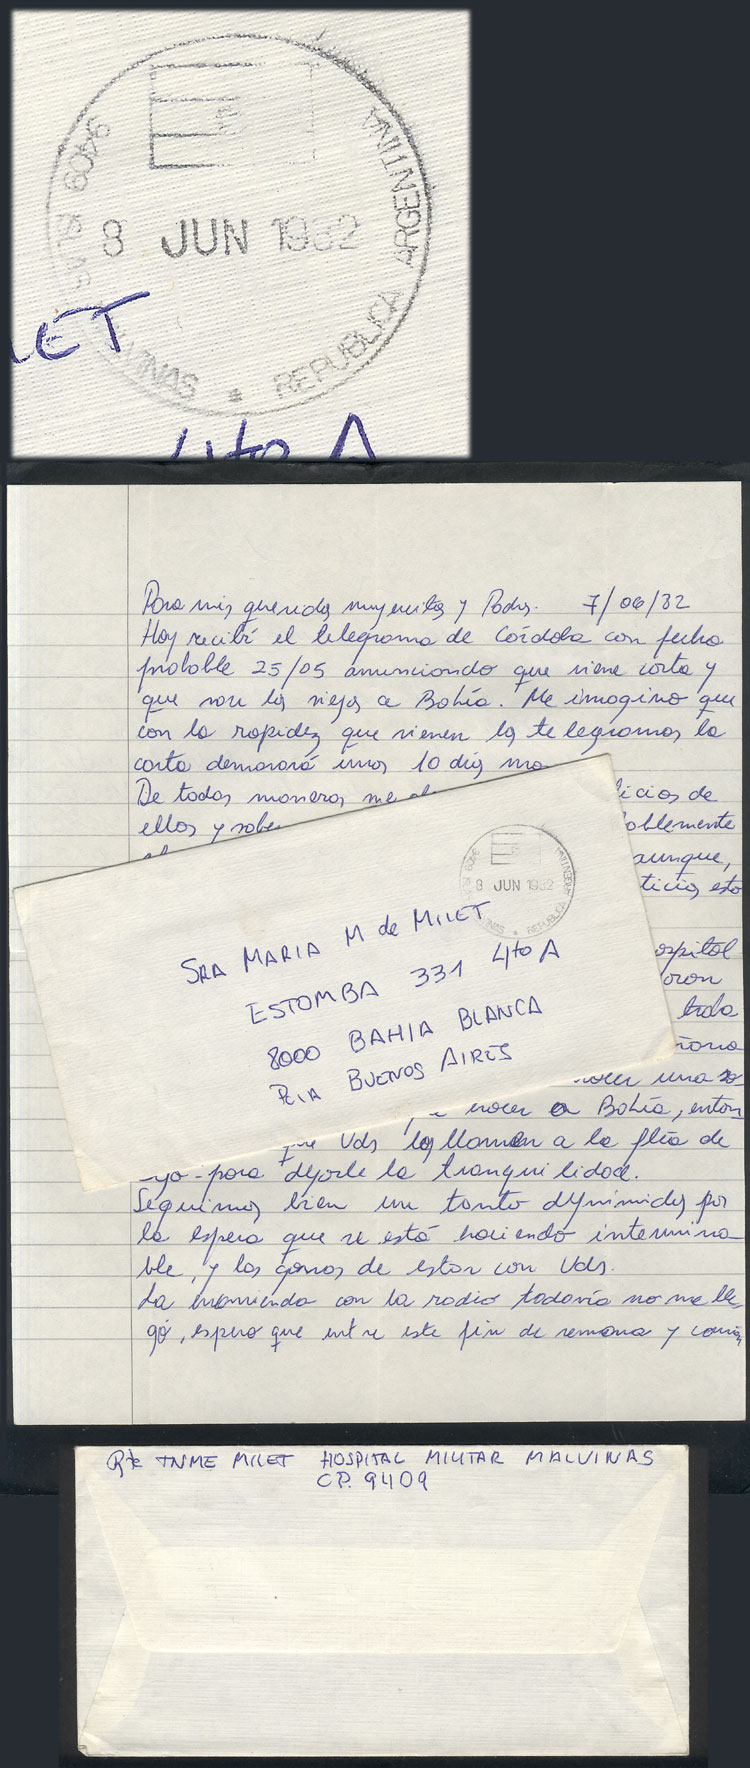 Lot 1253 - falkland islands (malvinas) postal history -  Guillermo Jalil - Philatino Auction #1920 WORLDWIDE + ARGENTINA: General May auction